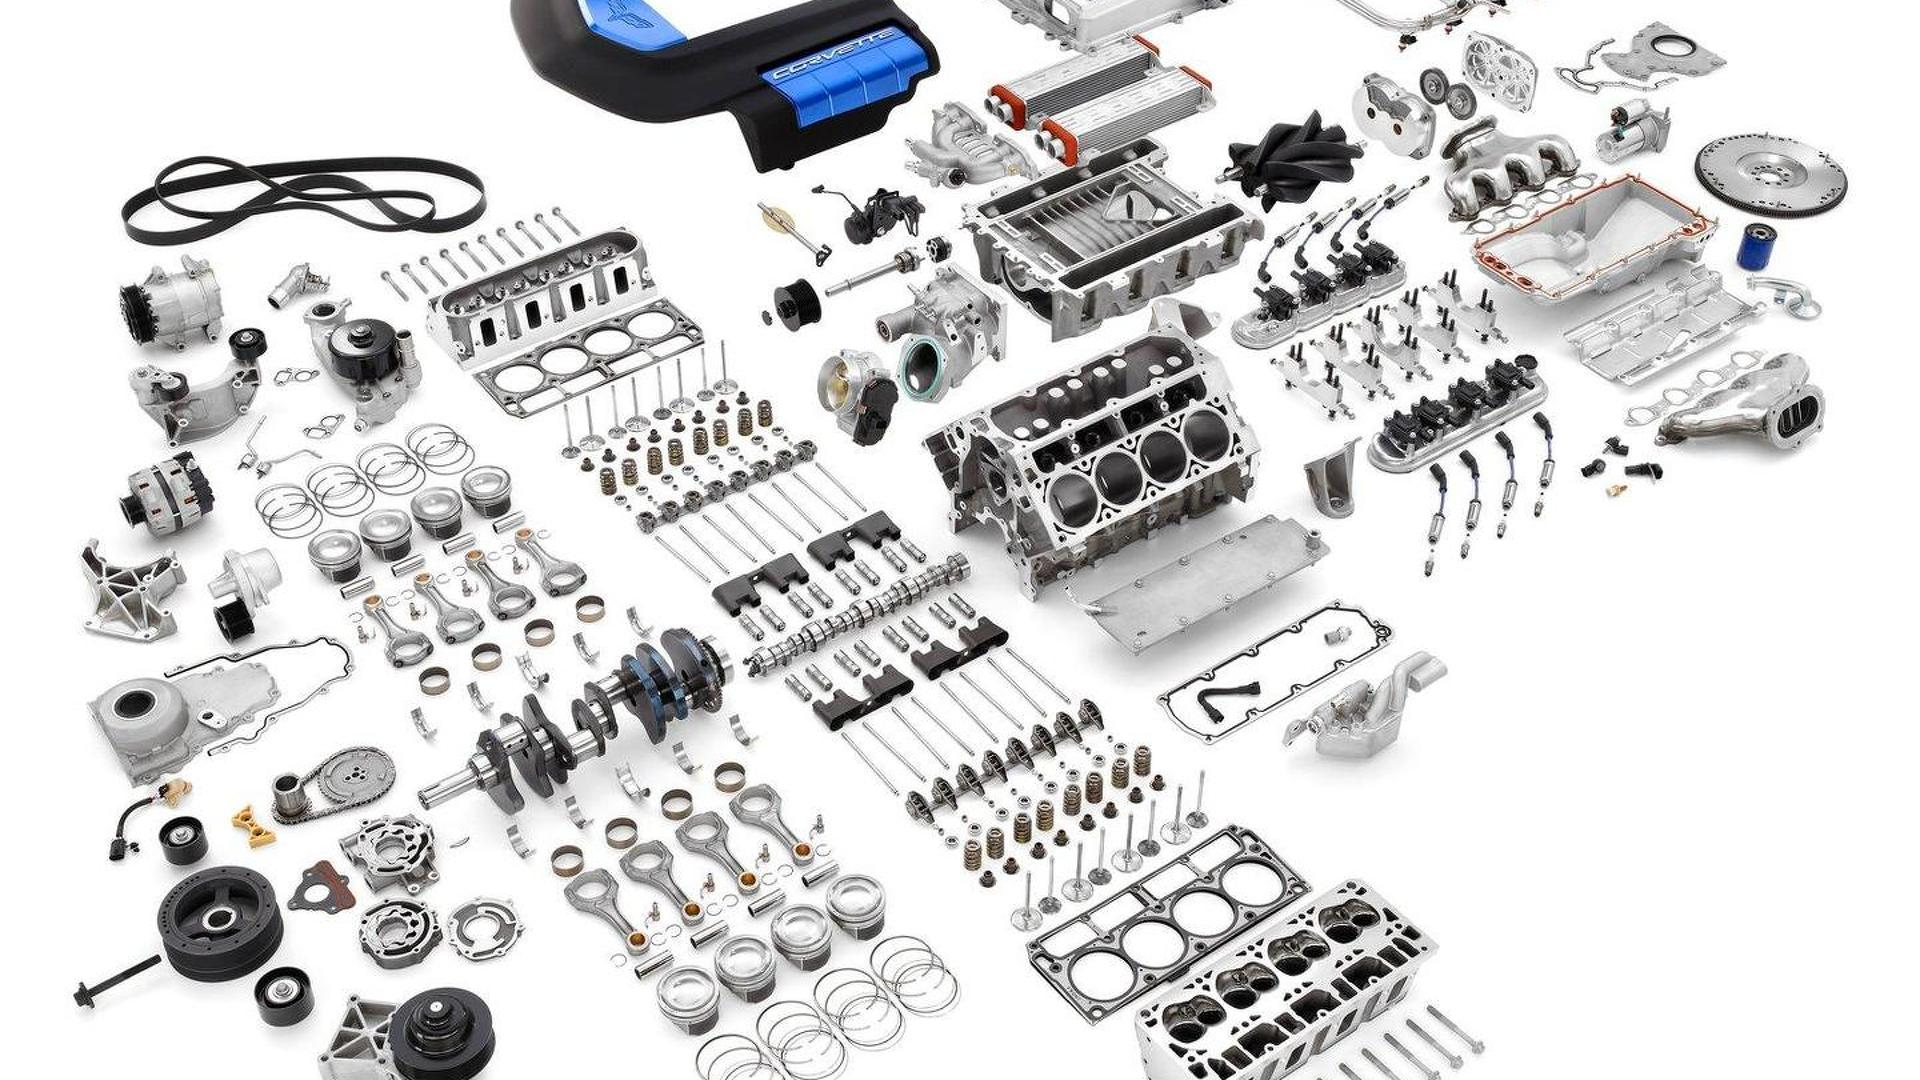 chevrolet performance offers ls7 and ls9 engines as build your own chevrolet performance offers ls7 and ls9 engines as build your own kits